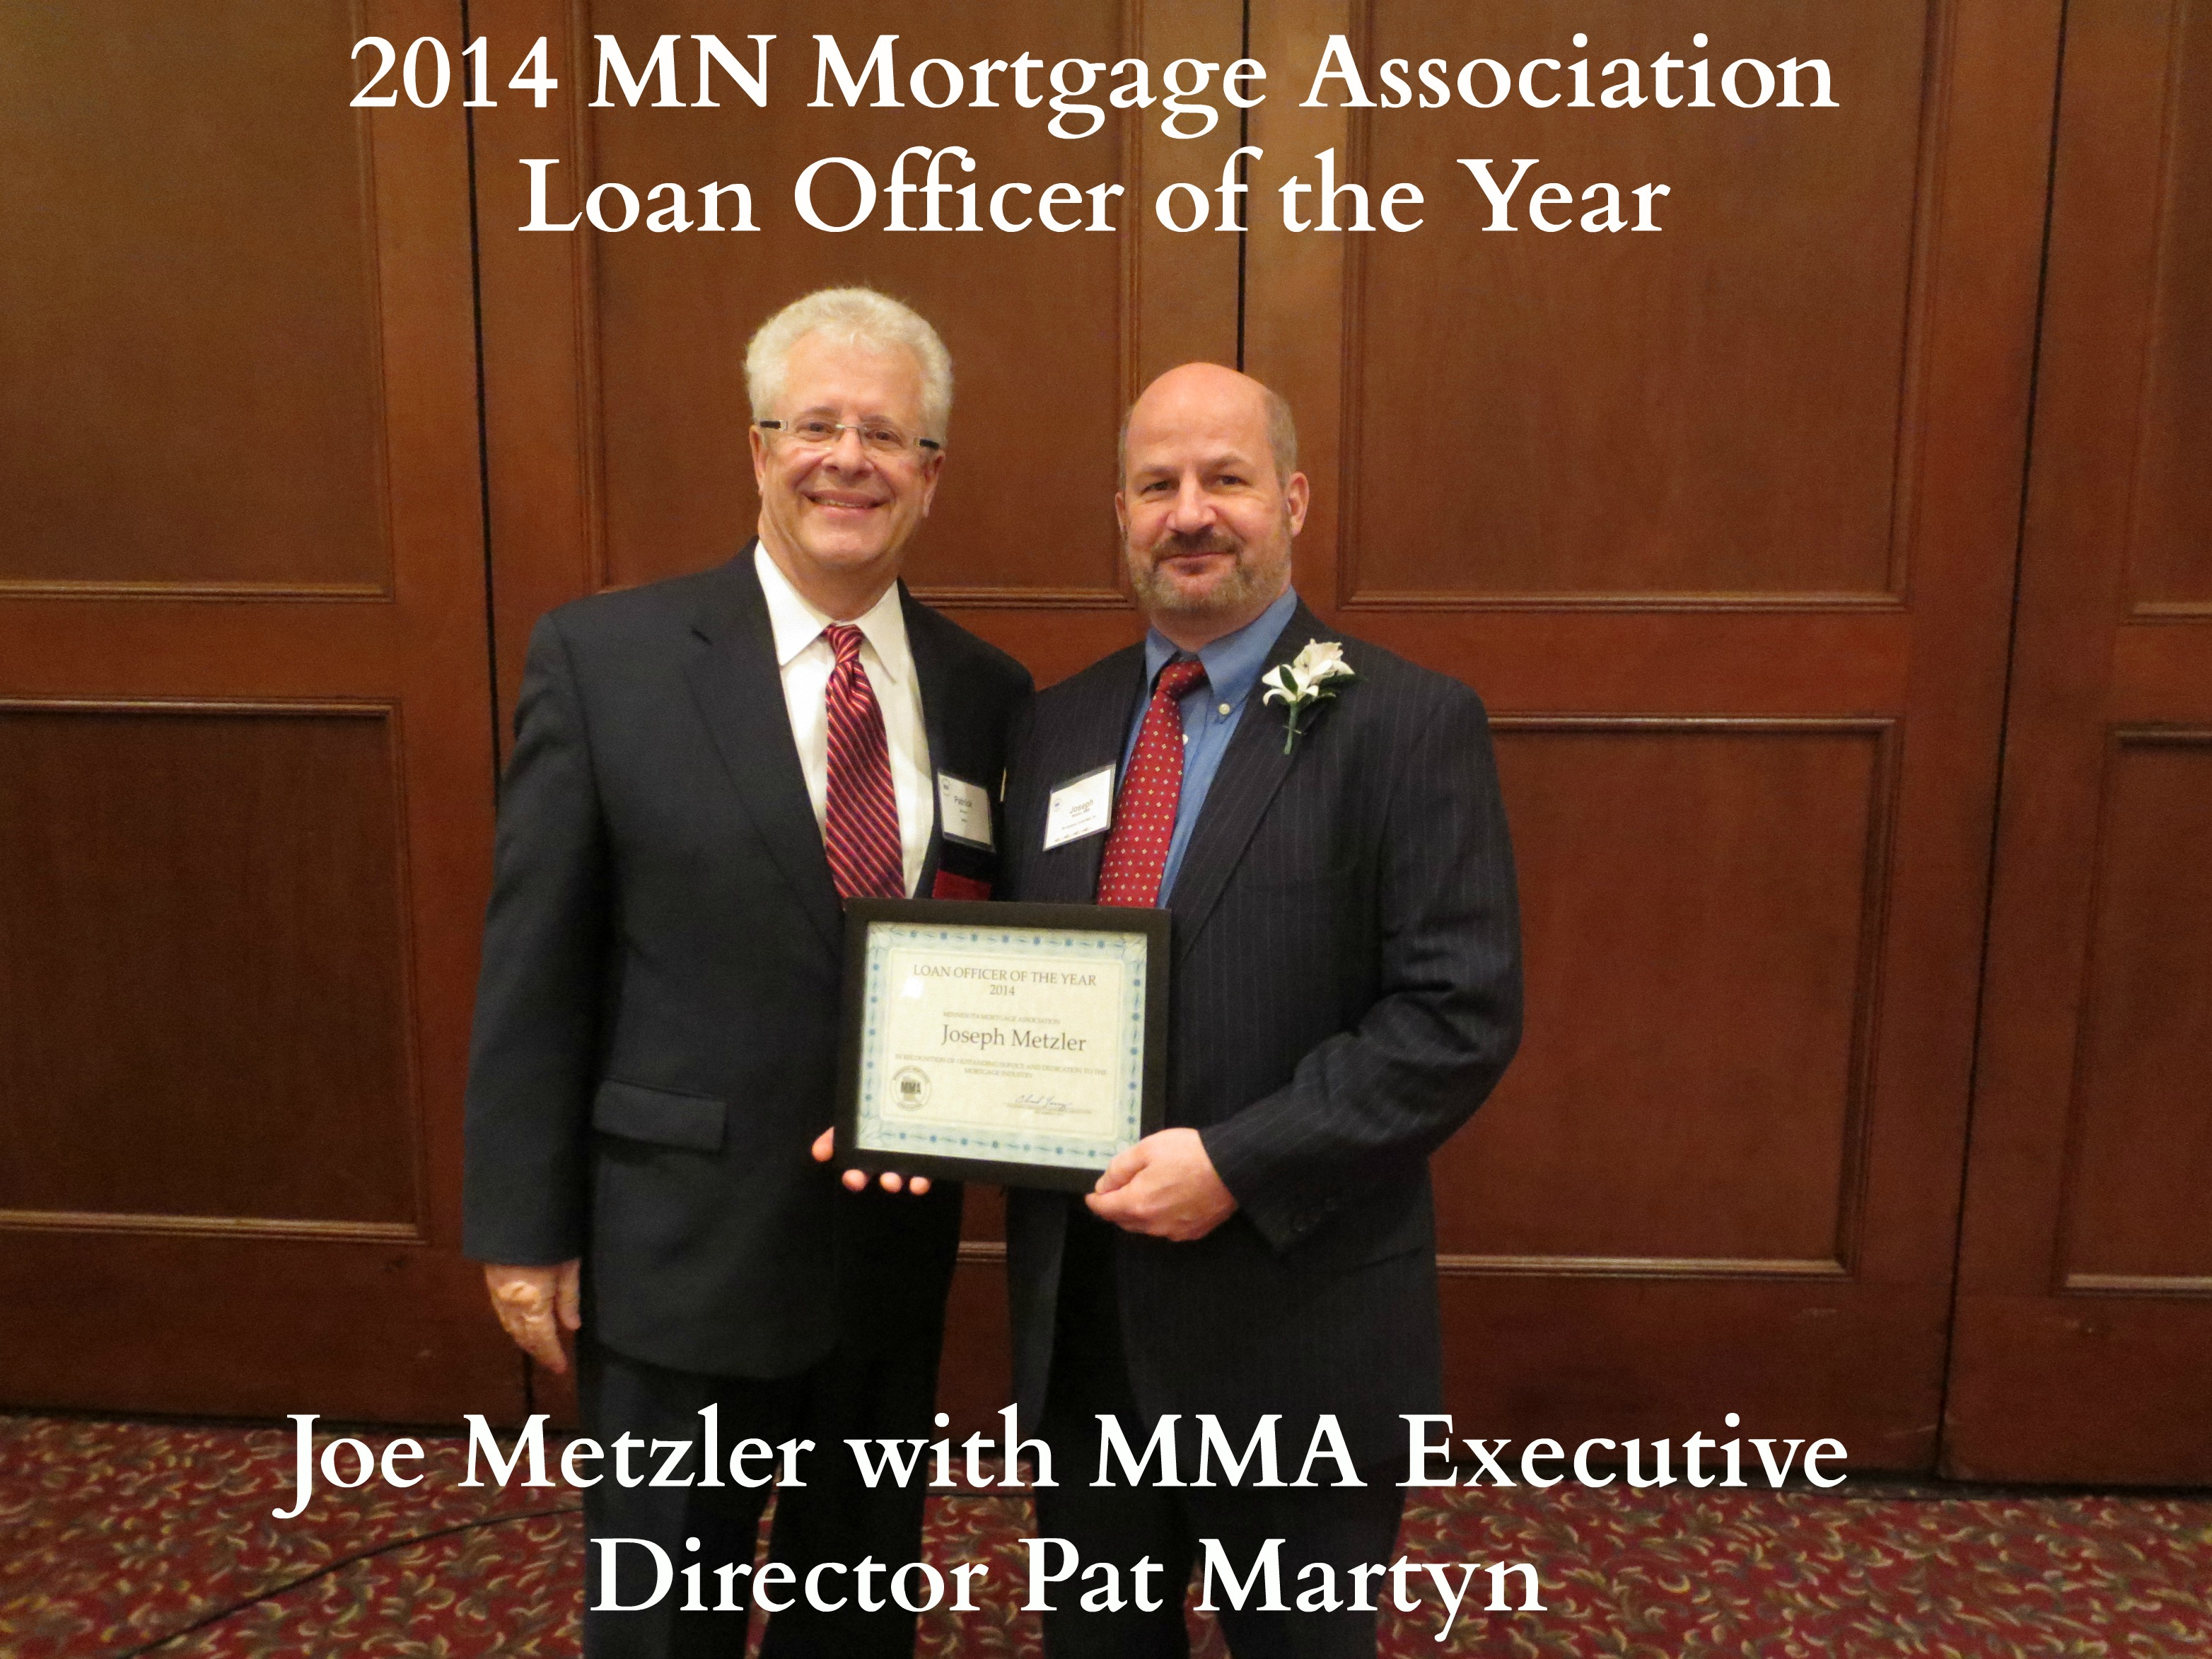 MN 2014 Mortgage Loan Officer of the Year